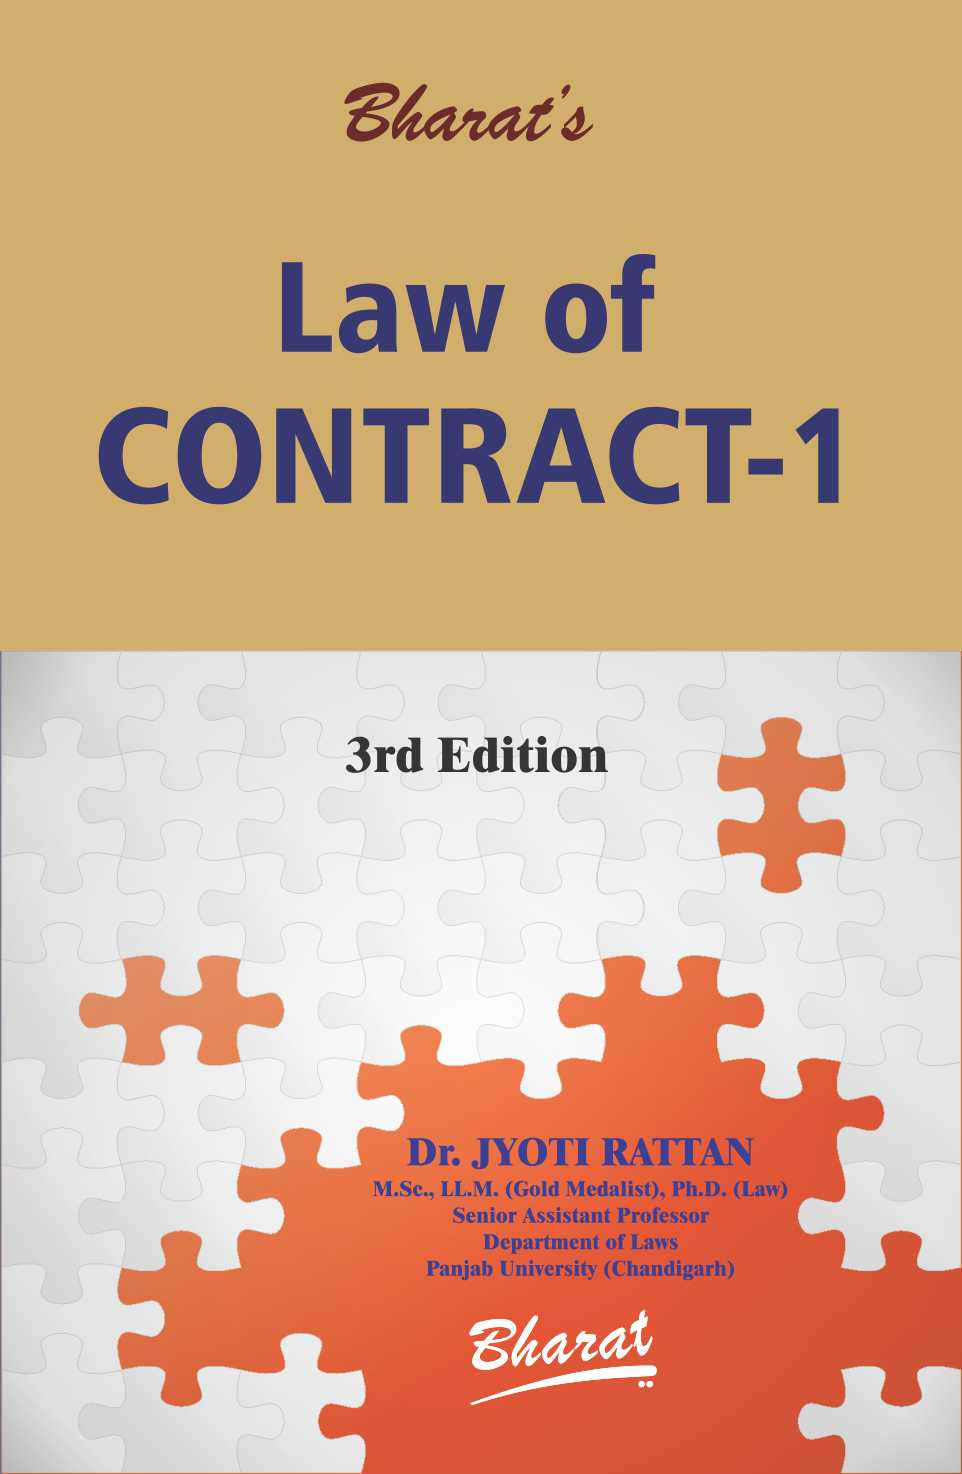 Rattan Jyoti Buy Law Of Contract 1 By Dr Jyoti Rattan Bharat Law House Pvt